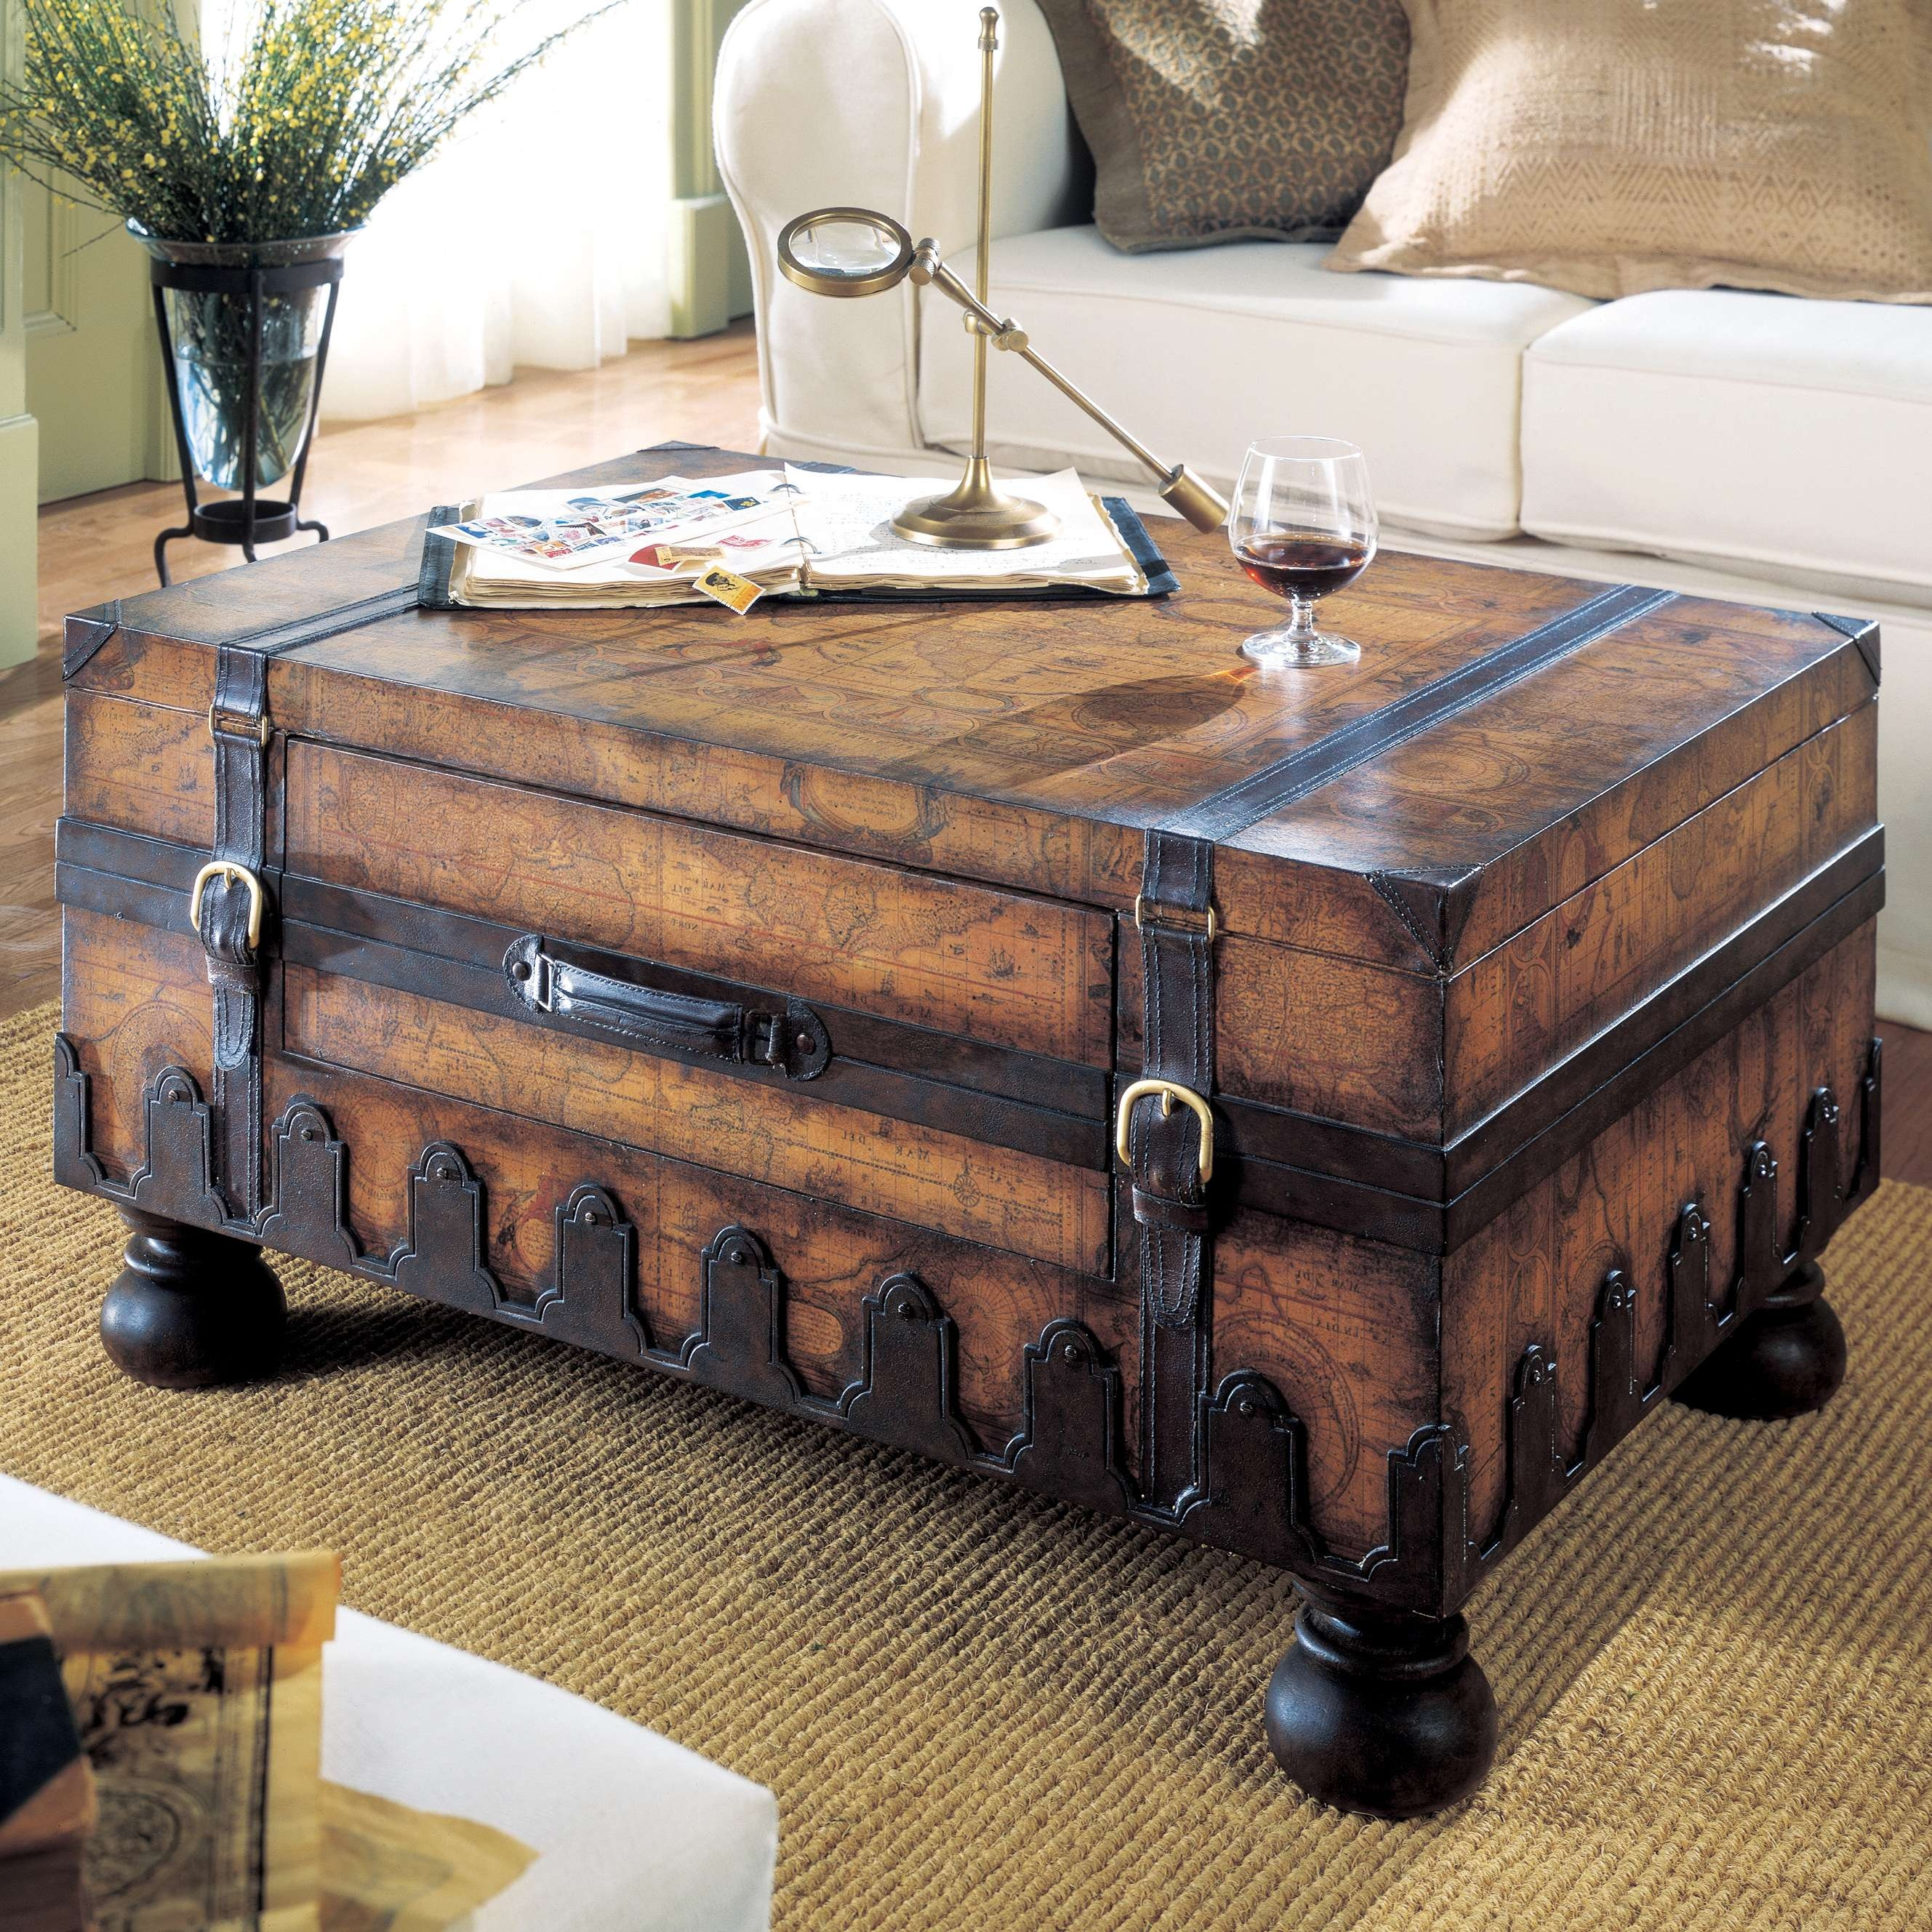 Newest Stainless Steel Trunk Coffee Tables Regarding Coffee Tables Ideas: Trunk Coffee Tables With Hidden Storage (Gallery 13 of 20)